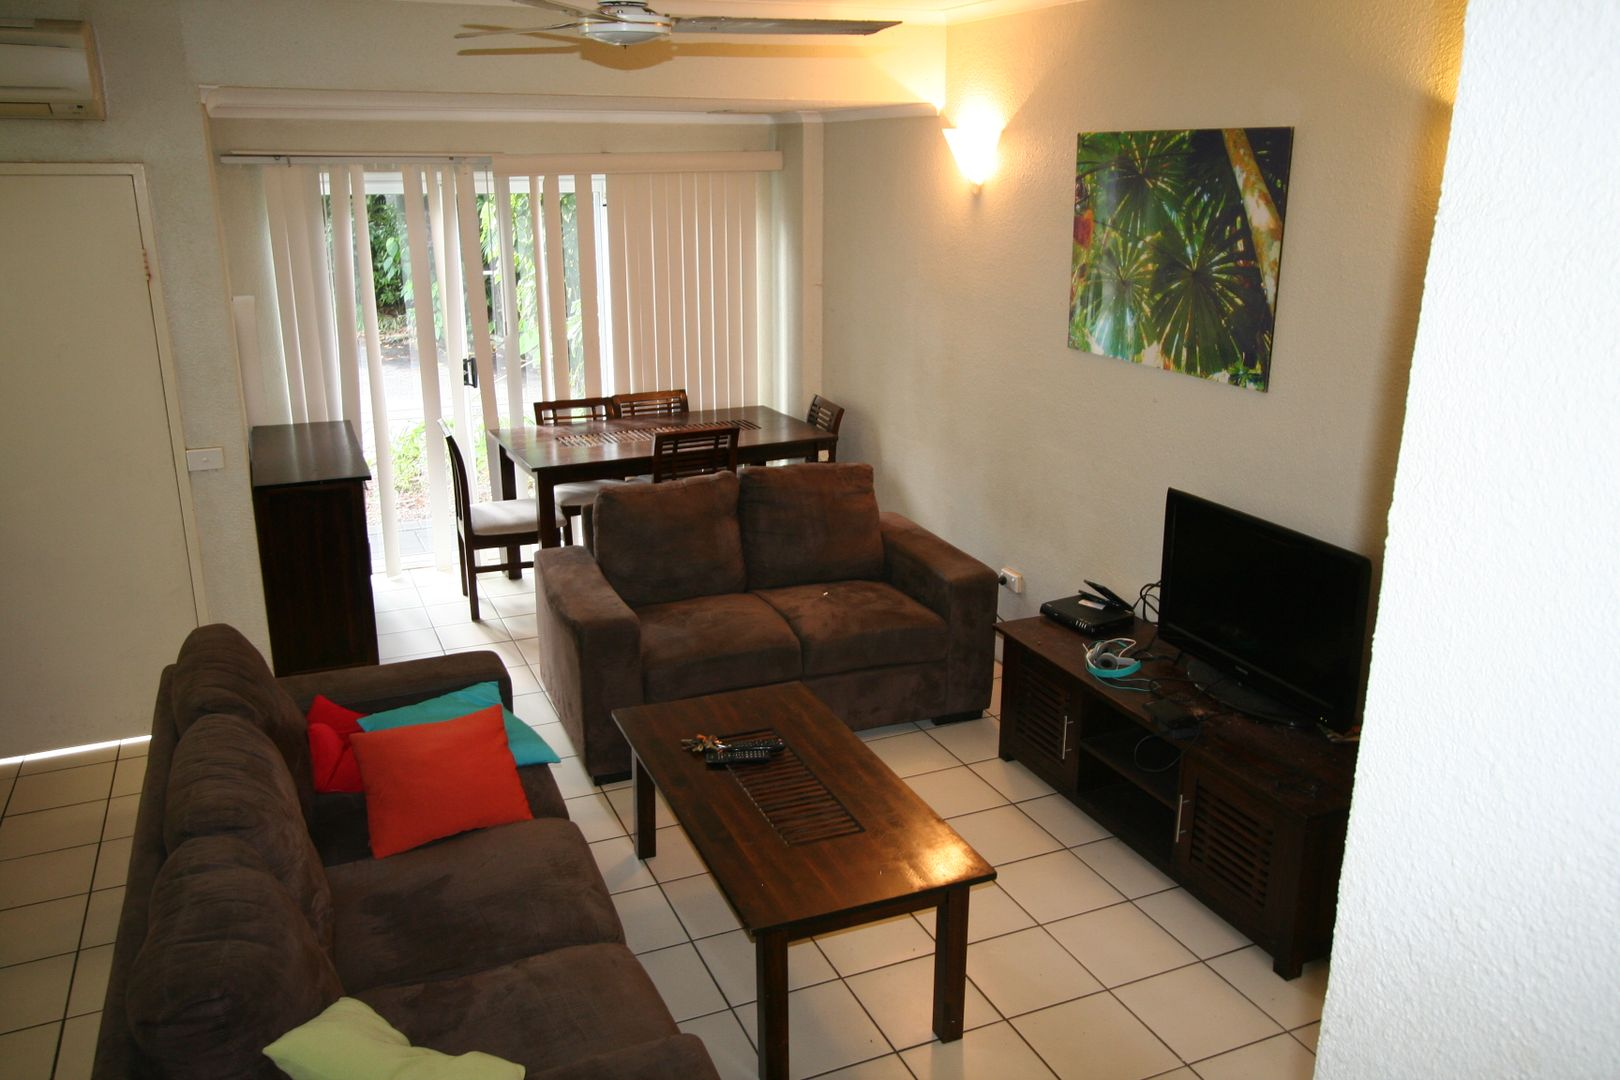 16 Reef Resort 121 Port Douglas Rd, Port Douglas QLD 4877, Image 2